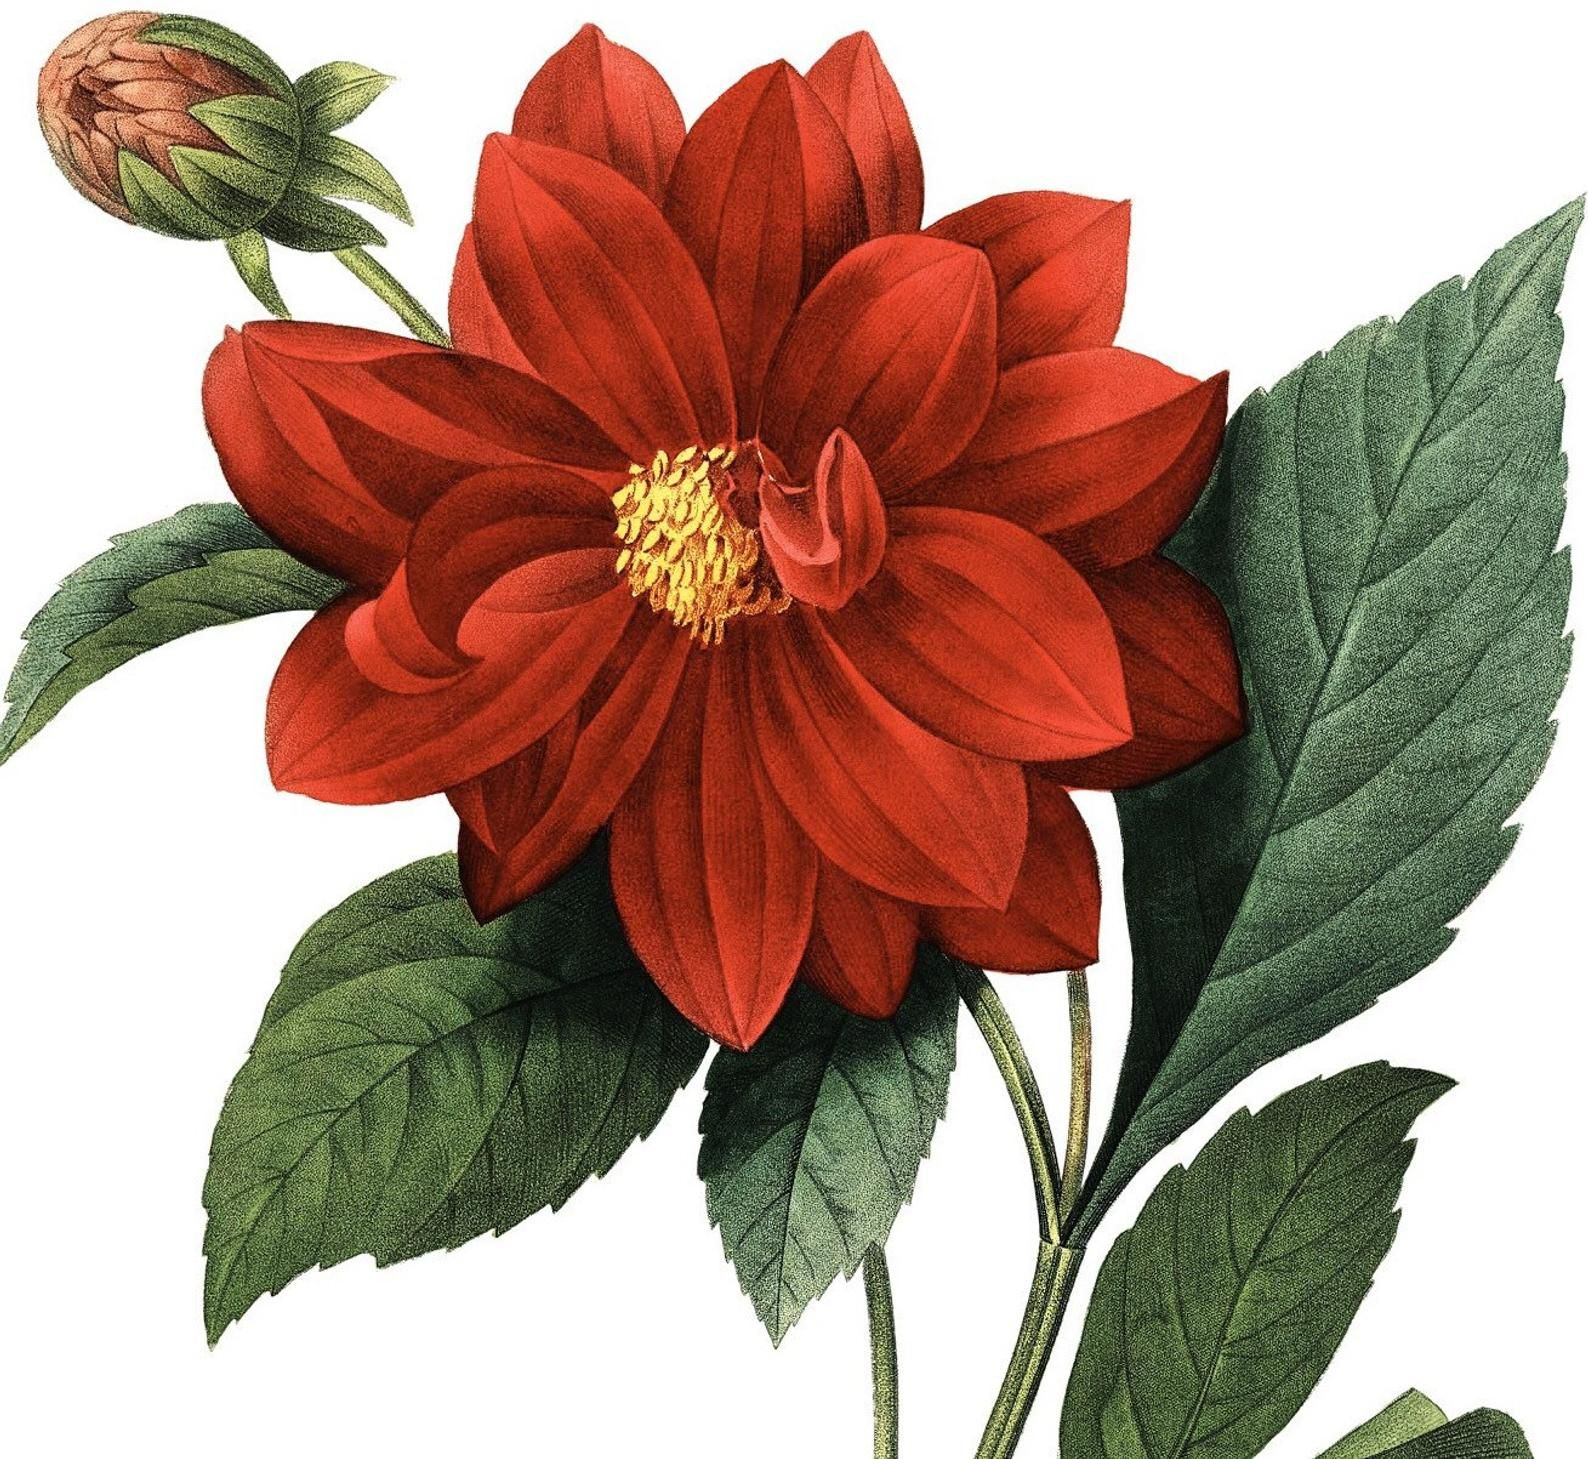 Red Dahlia Museum Quality Printable Download Super Hi Res Scan Etsy In 2020 Botanical Prints Vintage Botanical Prints Botanical Flowers